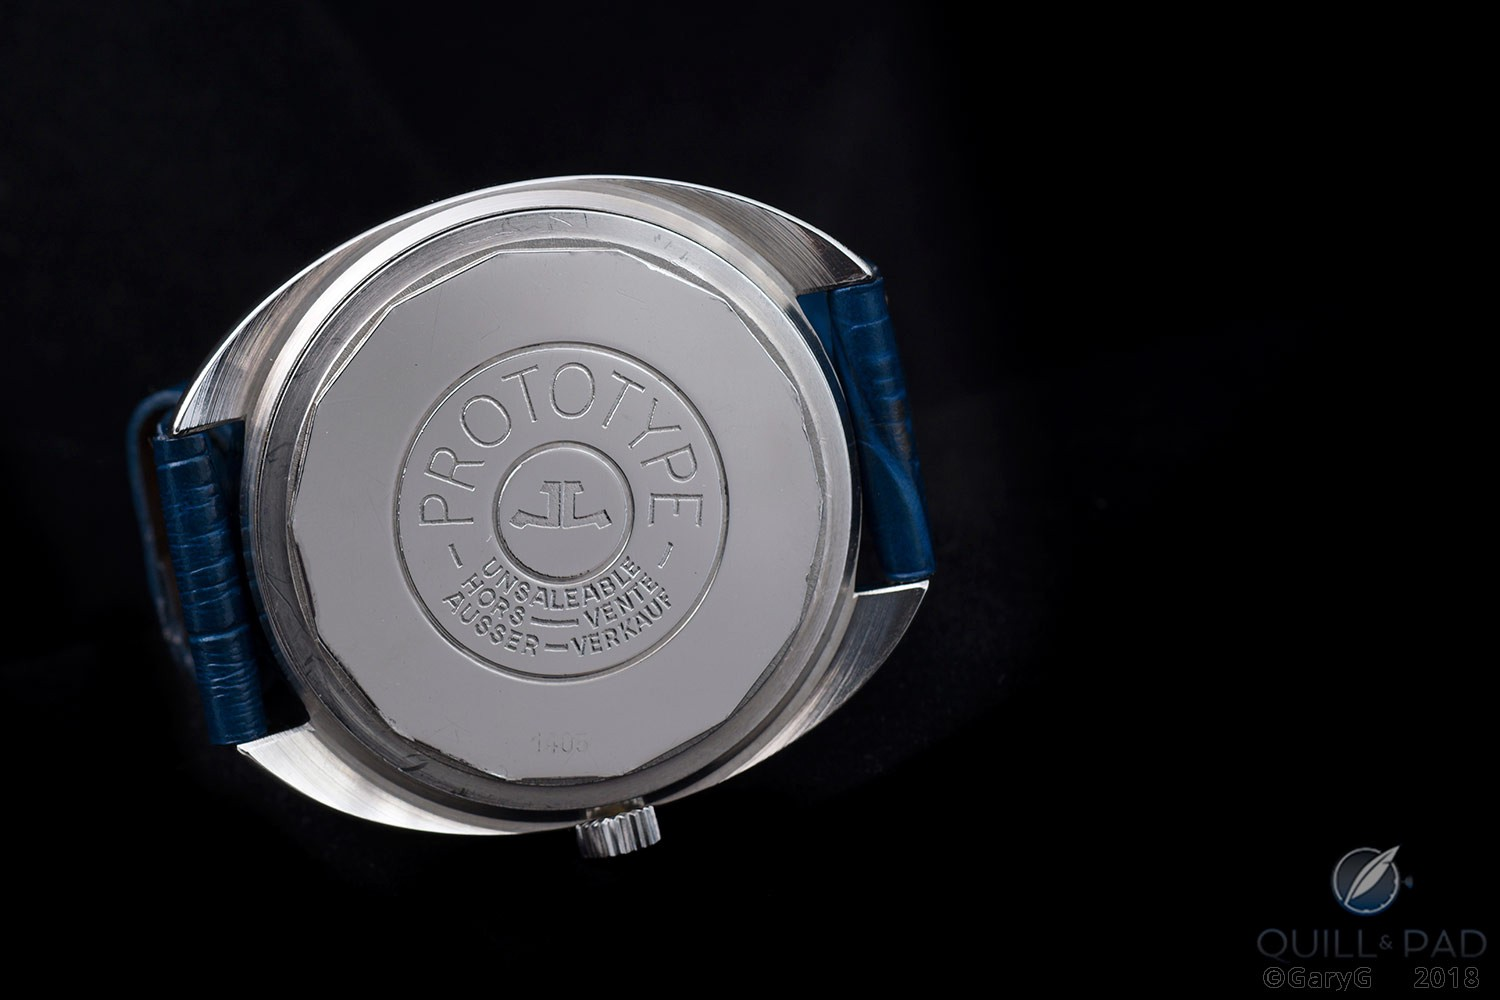 Not to be sold! Difficult-to-ignore warning on the Jaeger-LeCoultre Caliber 906 prototype